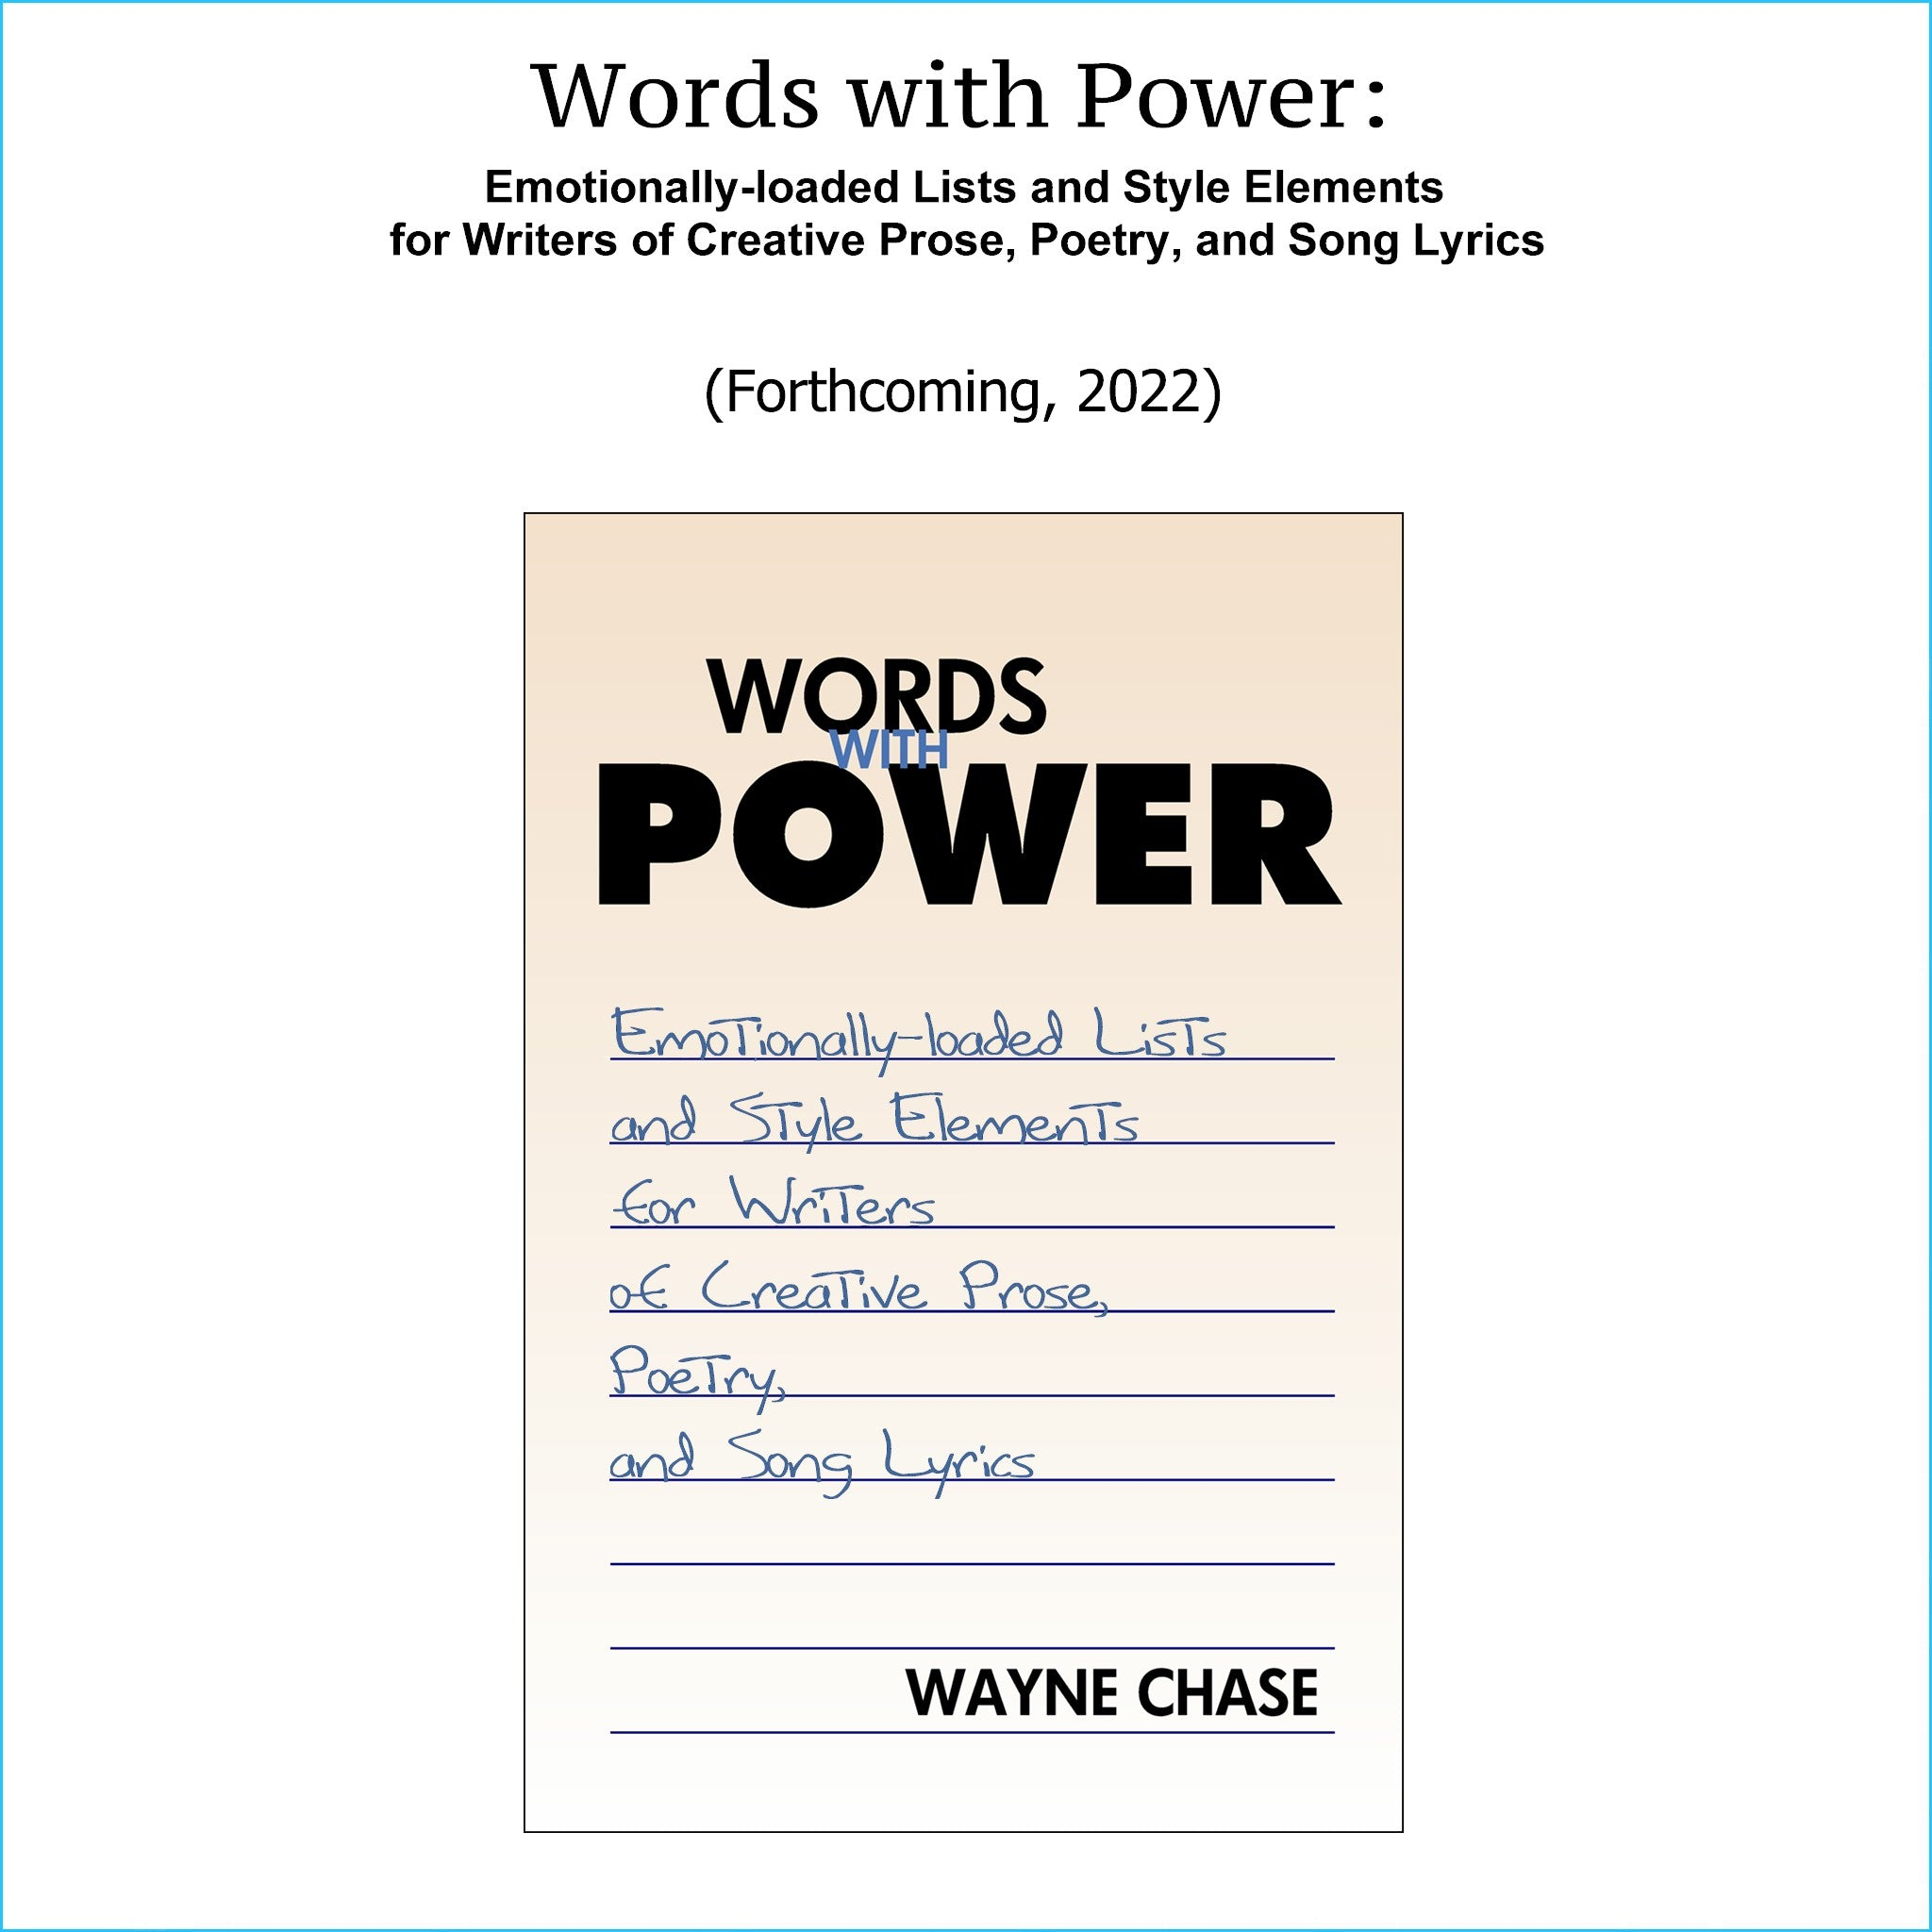 Item S-131: Words with Power: Emotionally-loaded Lists and Style Elements for Writers of Creative Prose, Poetry, and Song Lyrics. Forthcoming book, 2022.